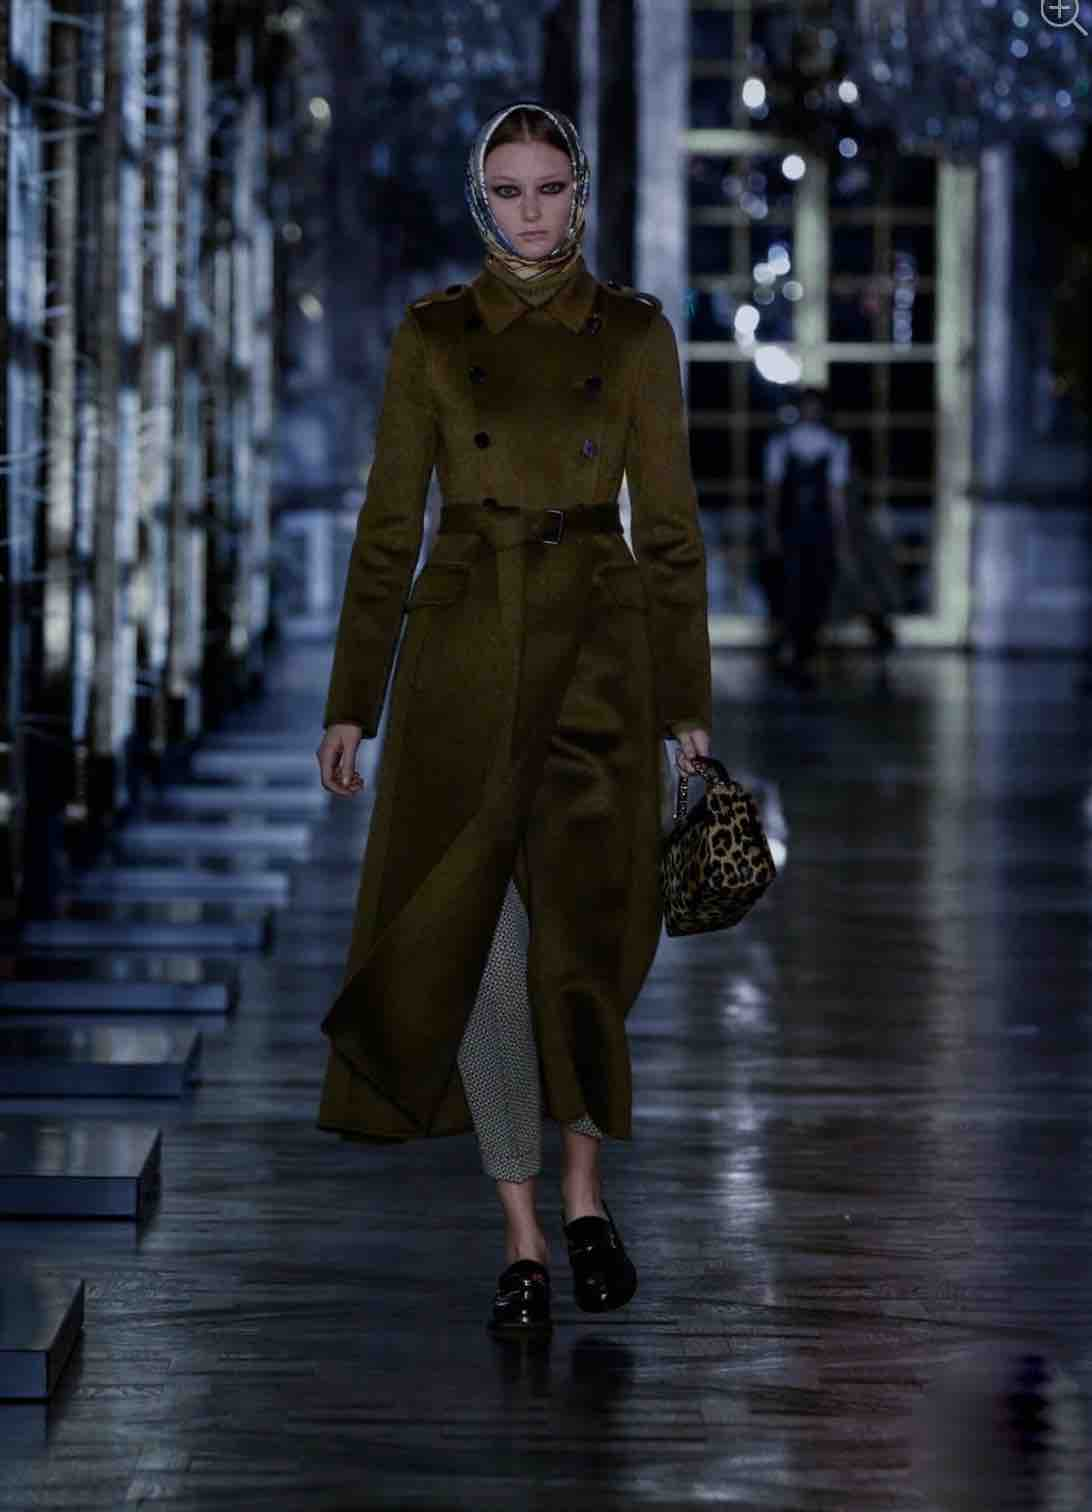 Dior Military Is One Of The Style Trends To Shop For Fall 2021